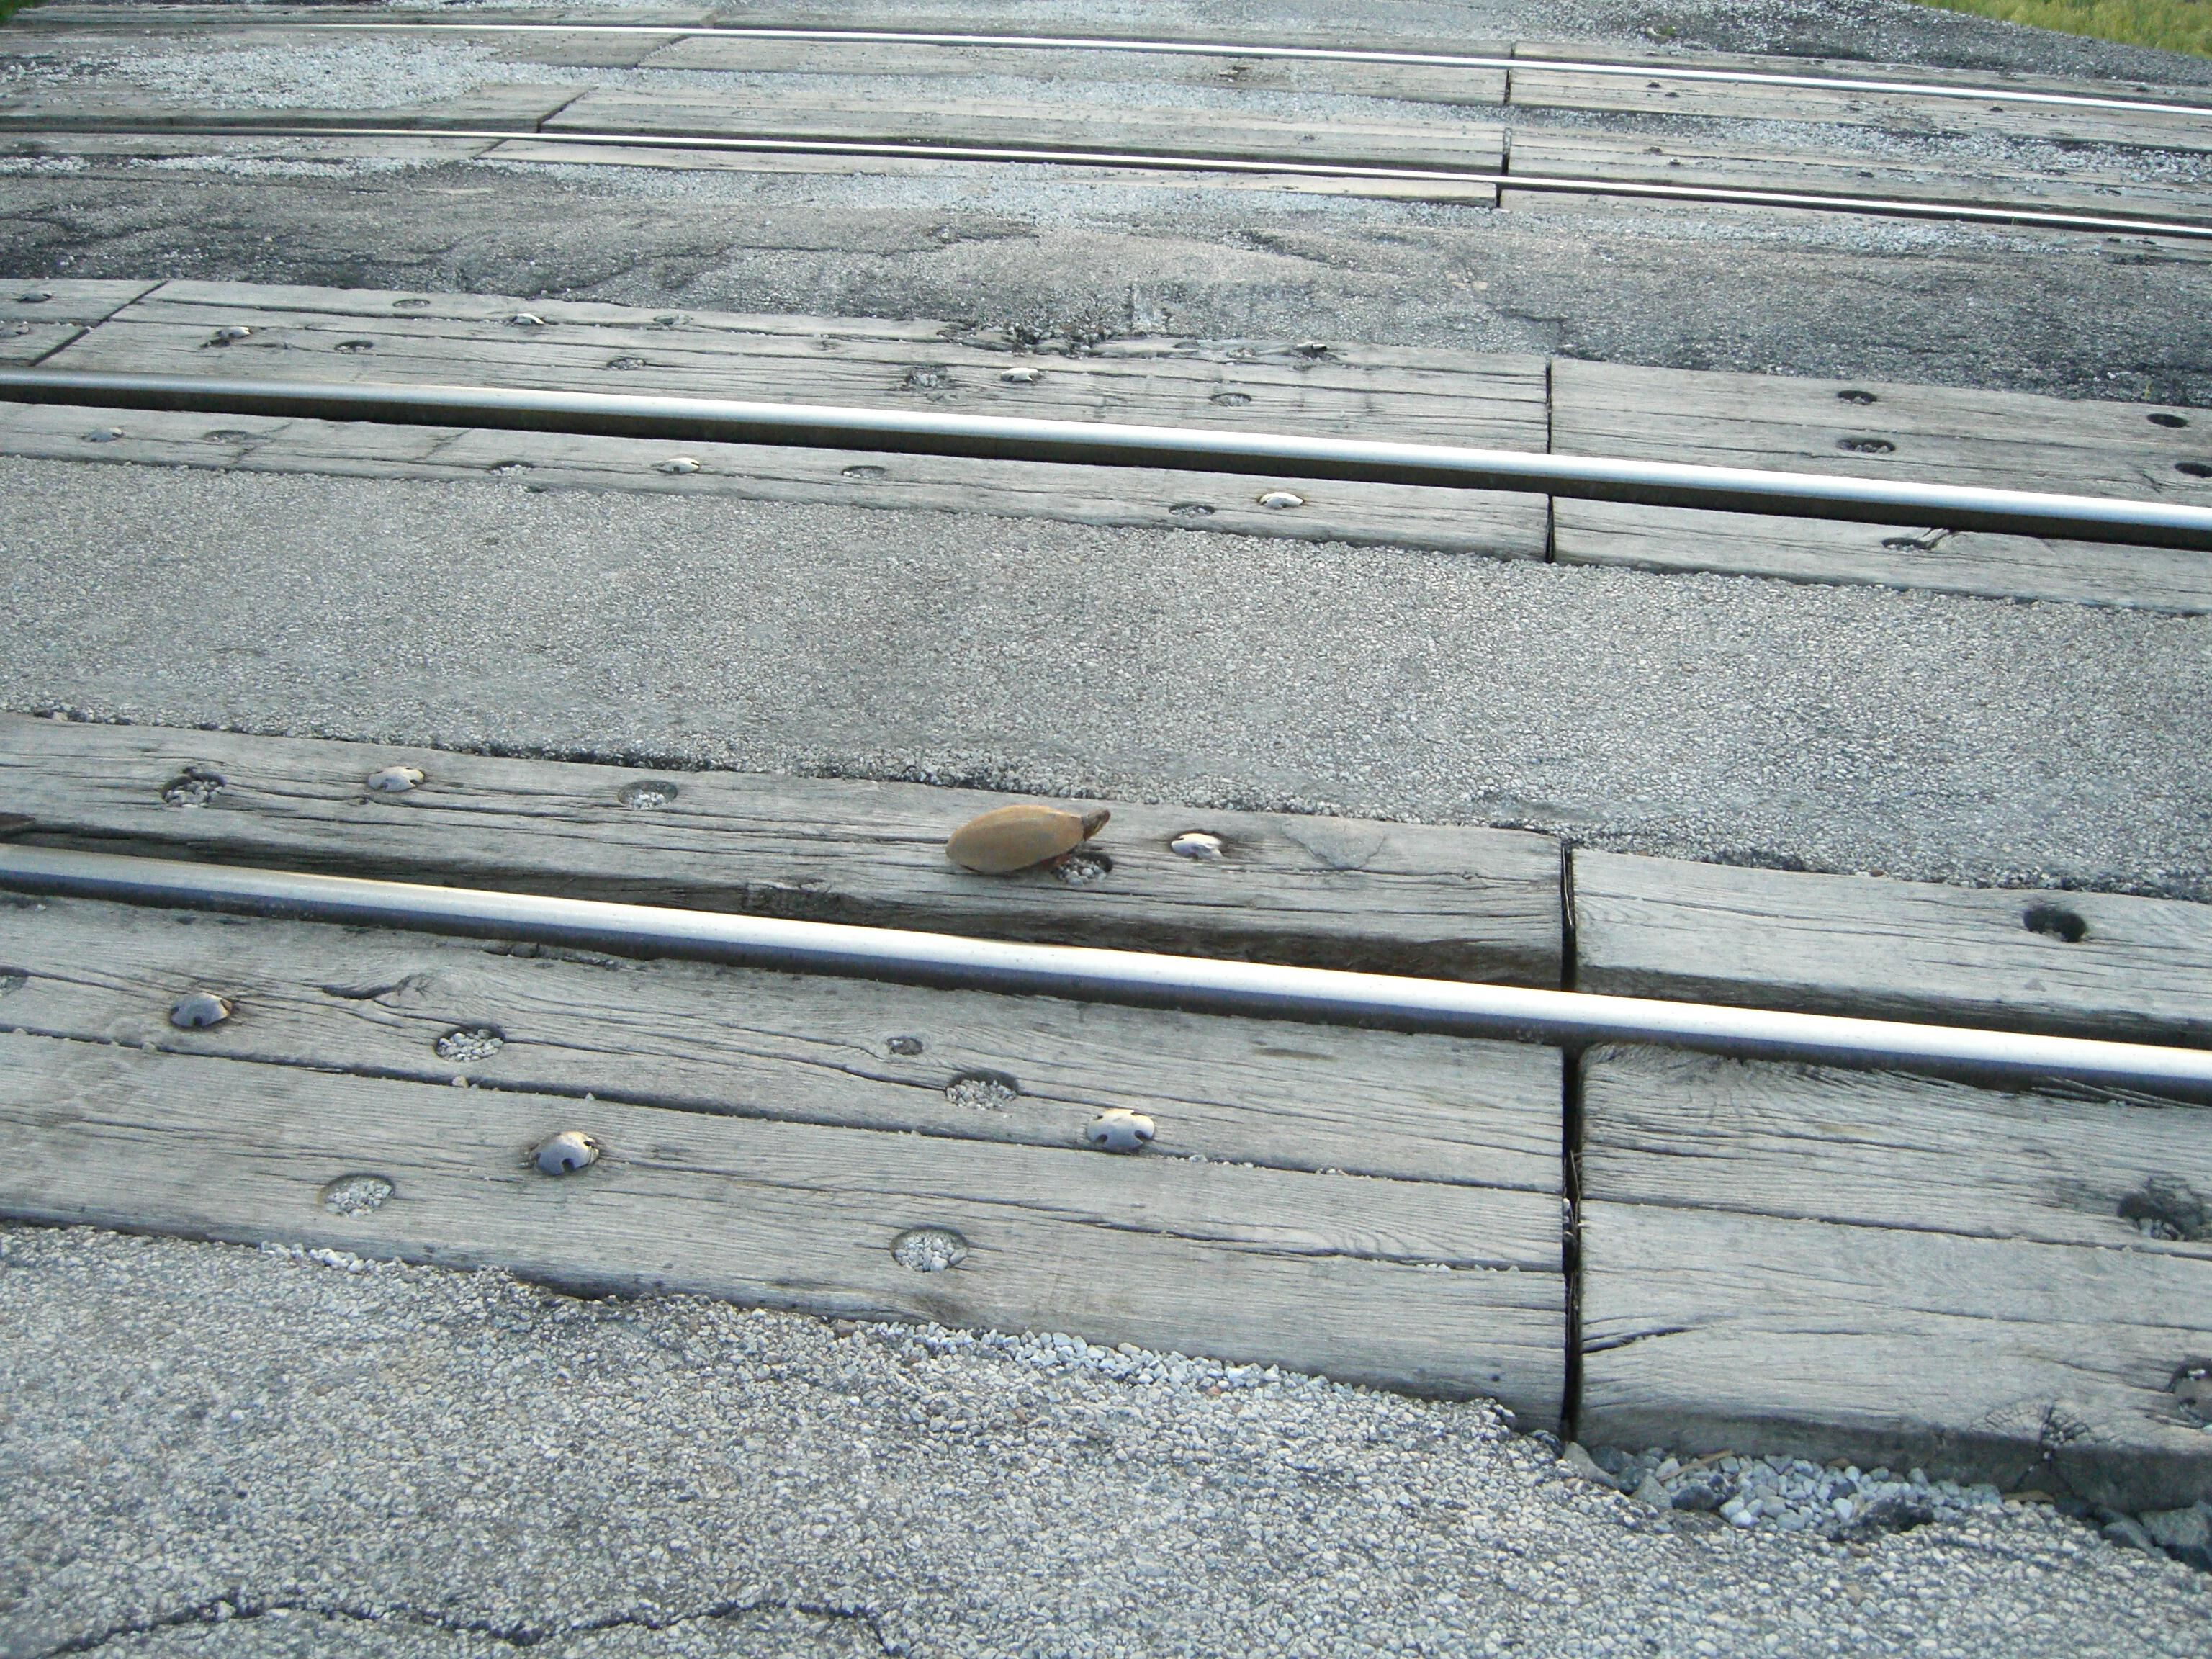 A turtle on train tracks